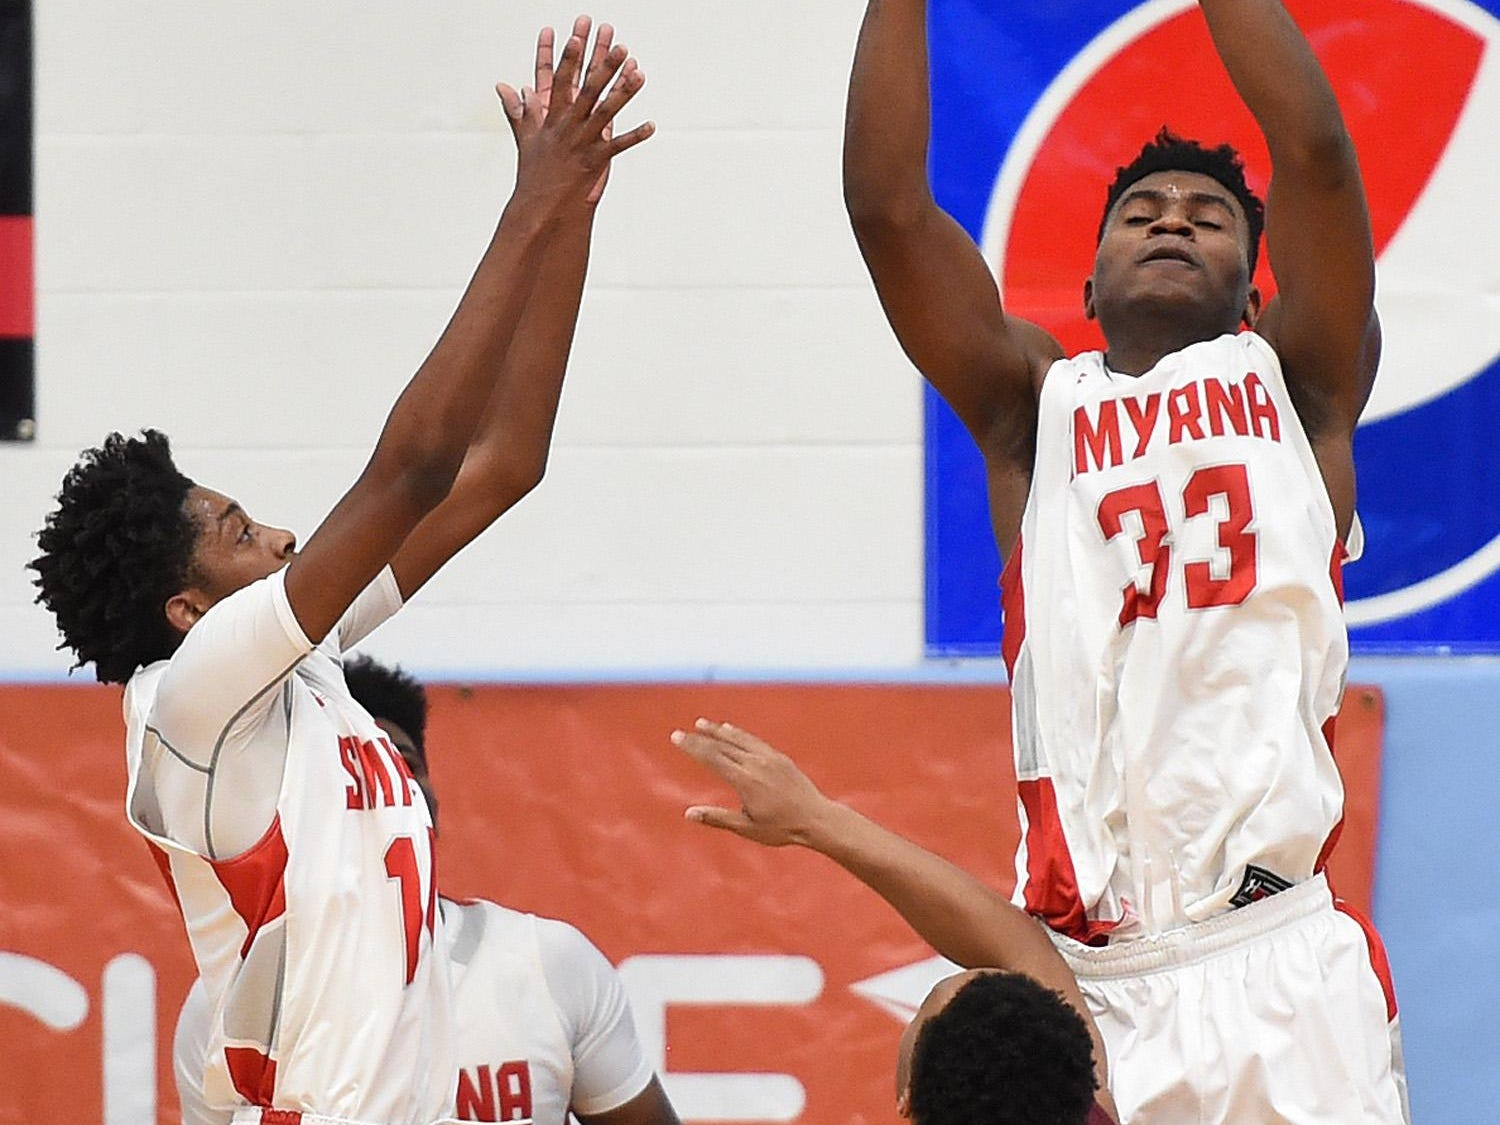 Smyrna's #33 Azubuike Nwankwo grabs a rebound as The Annual Slam Dunk to the Beach Basketball Tournament started at Cape Henlopen High School in Lewes on Tuesday December 27th with Smyrna HS (white) hosting Bishop McNamara HS from Forestville, Md.